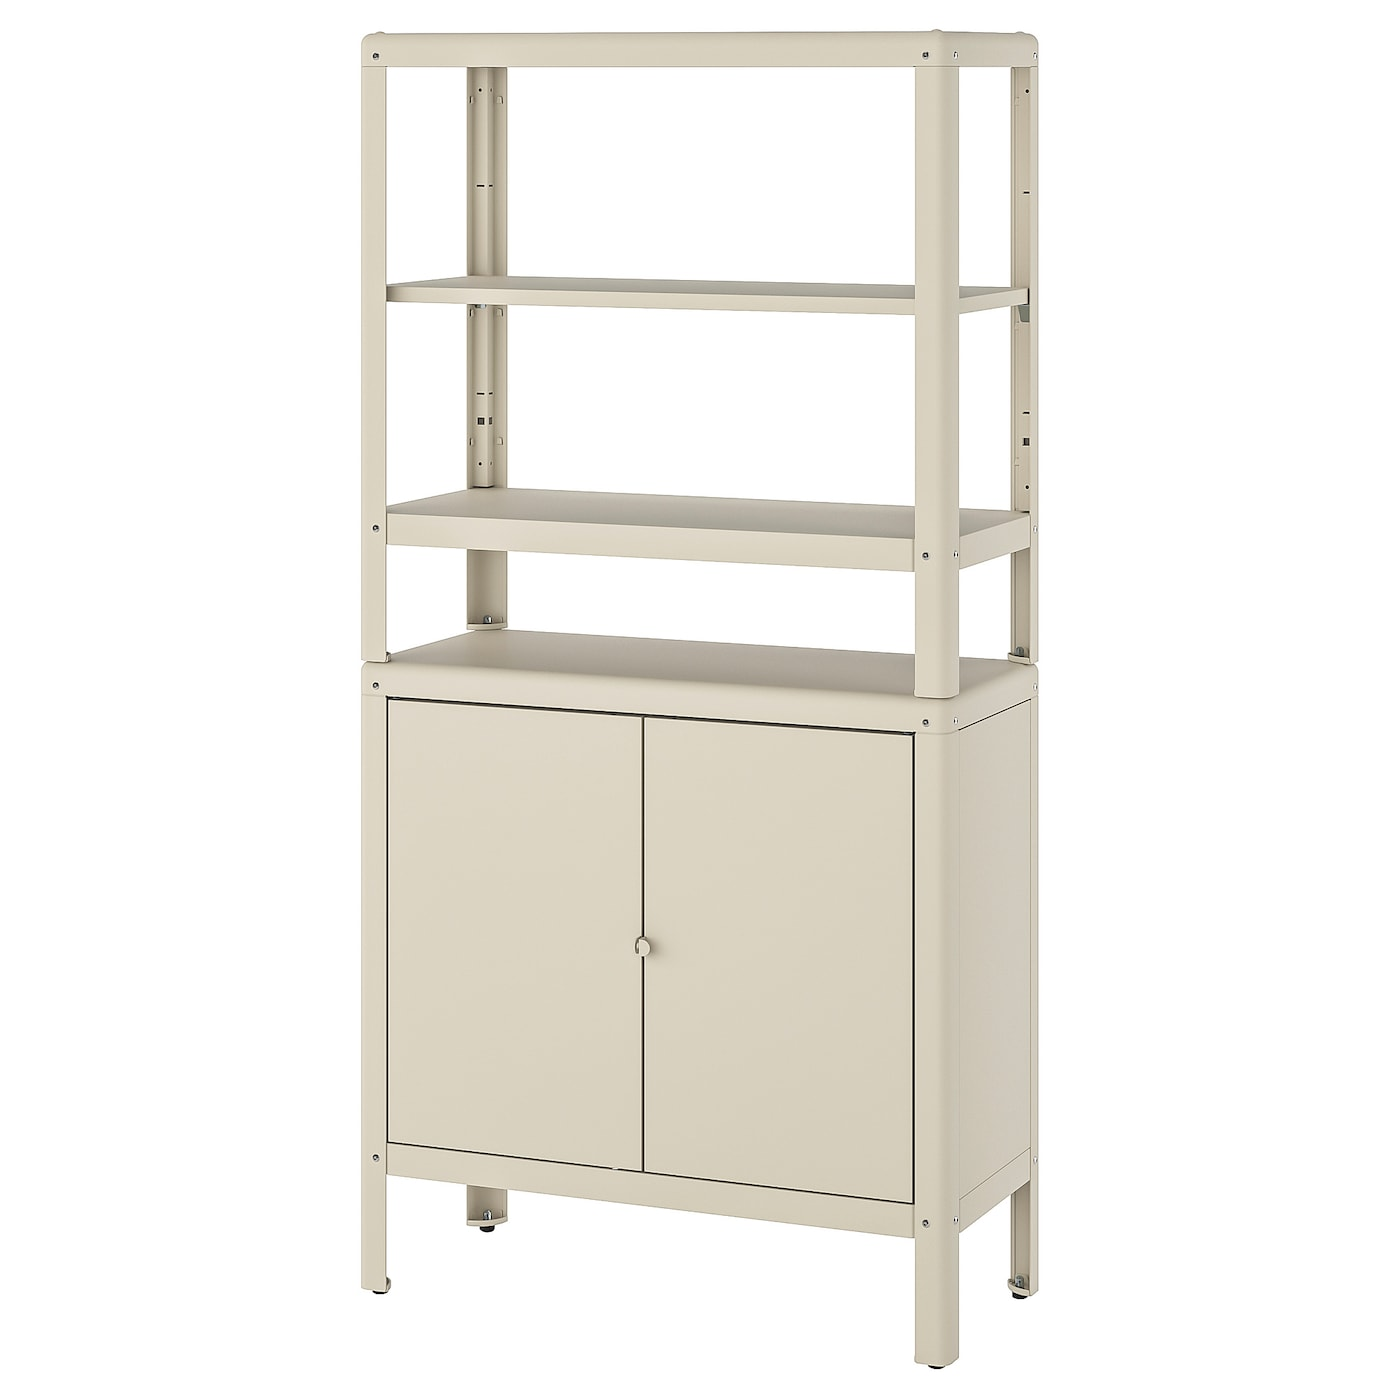 IKEA KOLBJÖRN shelving unit with cabinet Suitable for both indoor and outdoor use.